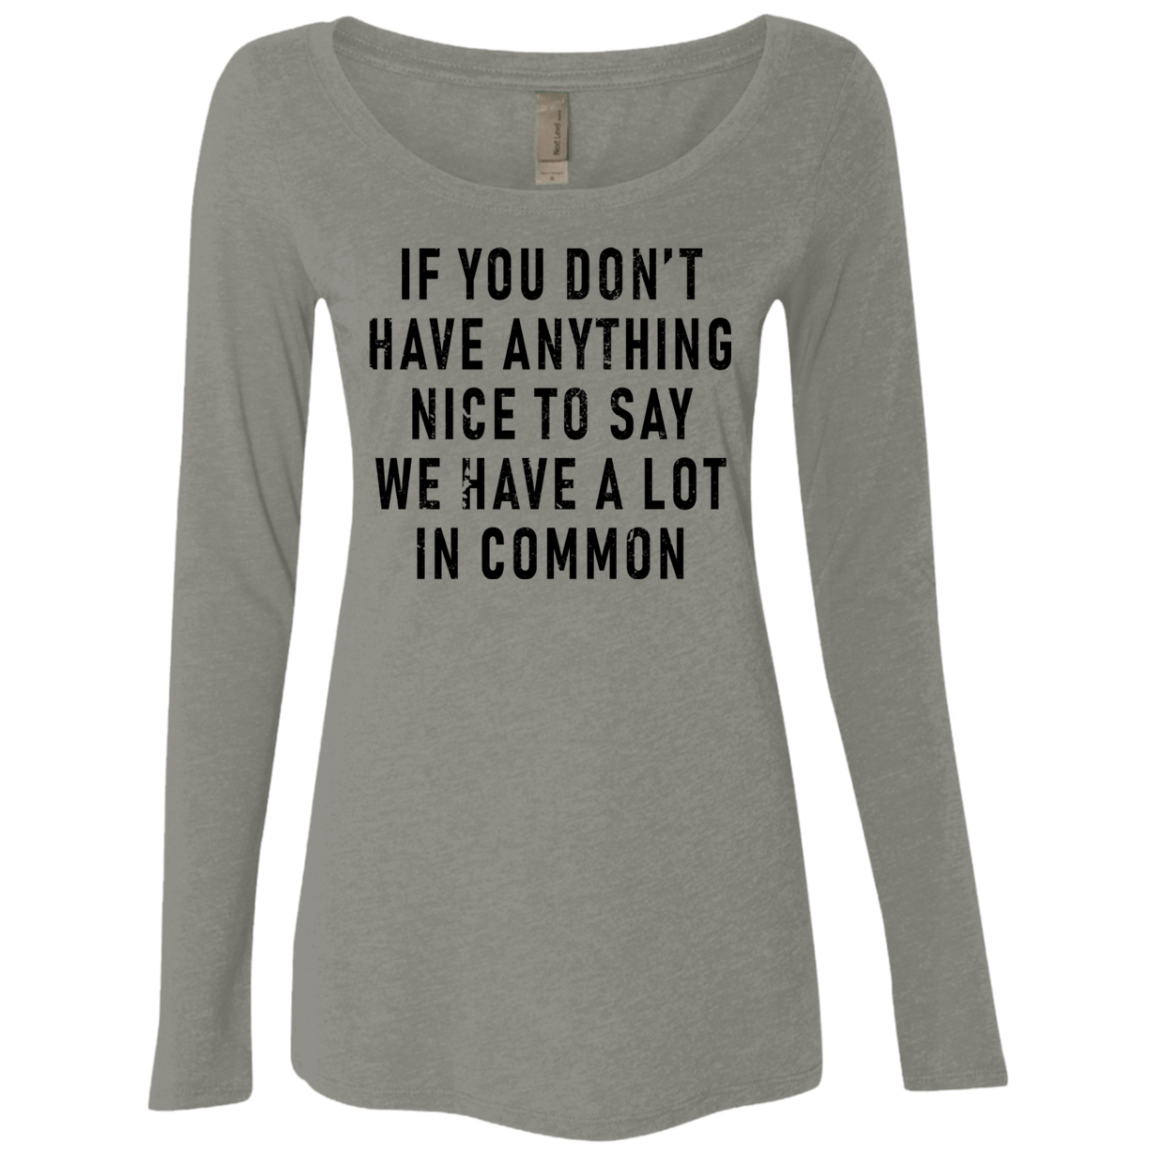 If You Don't Have Anything Nice To Say, We Have A Lot In Common Women's Long Sleeve Tee